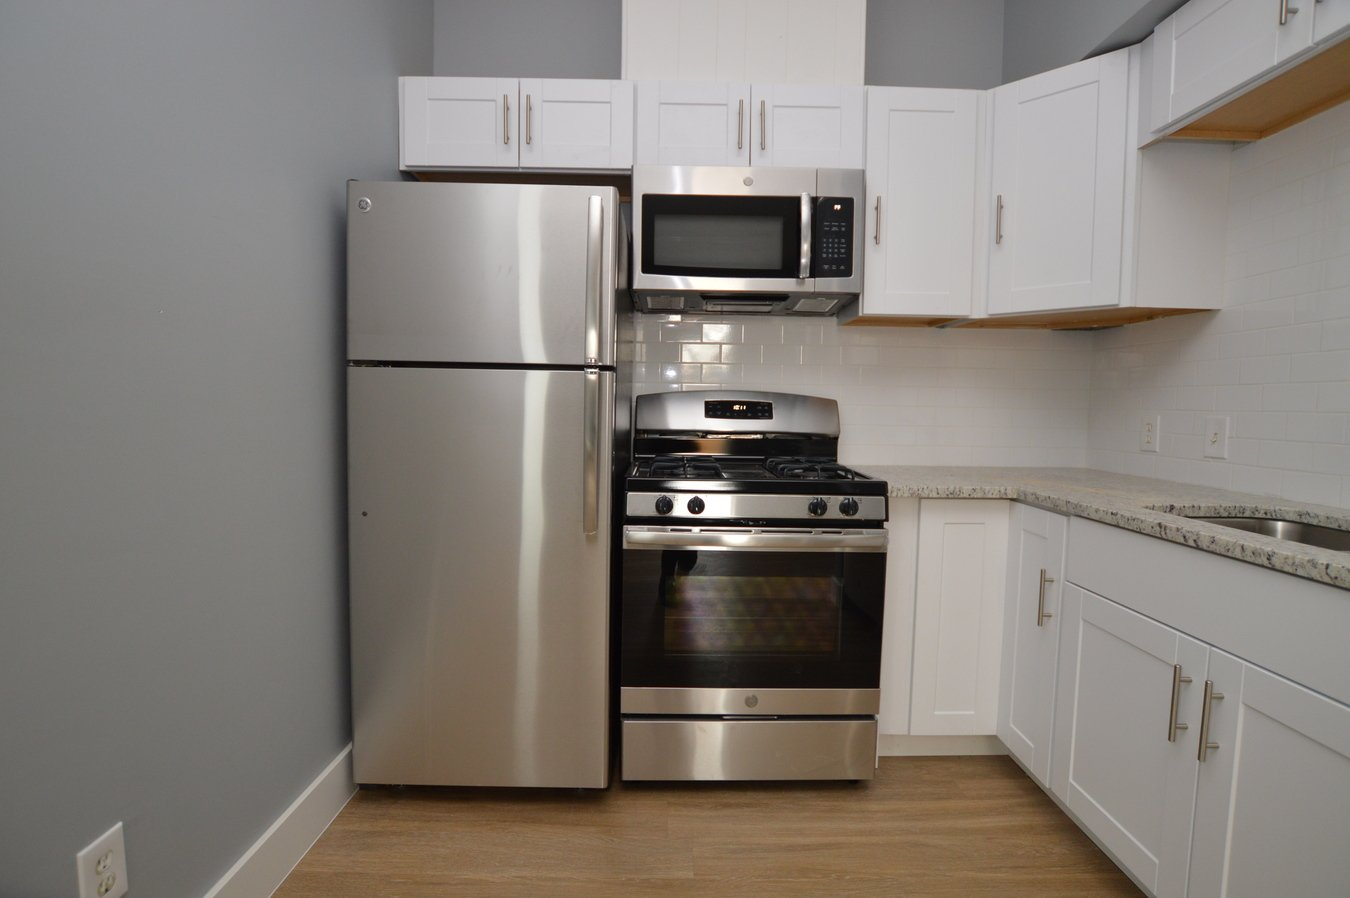 3 Bedrooms 2 Bathrooms Apartment for rent at 2324 Federal in Denver, CO